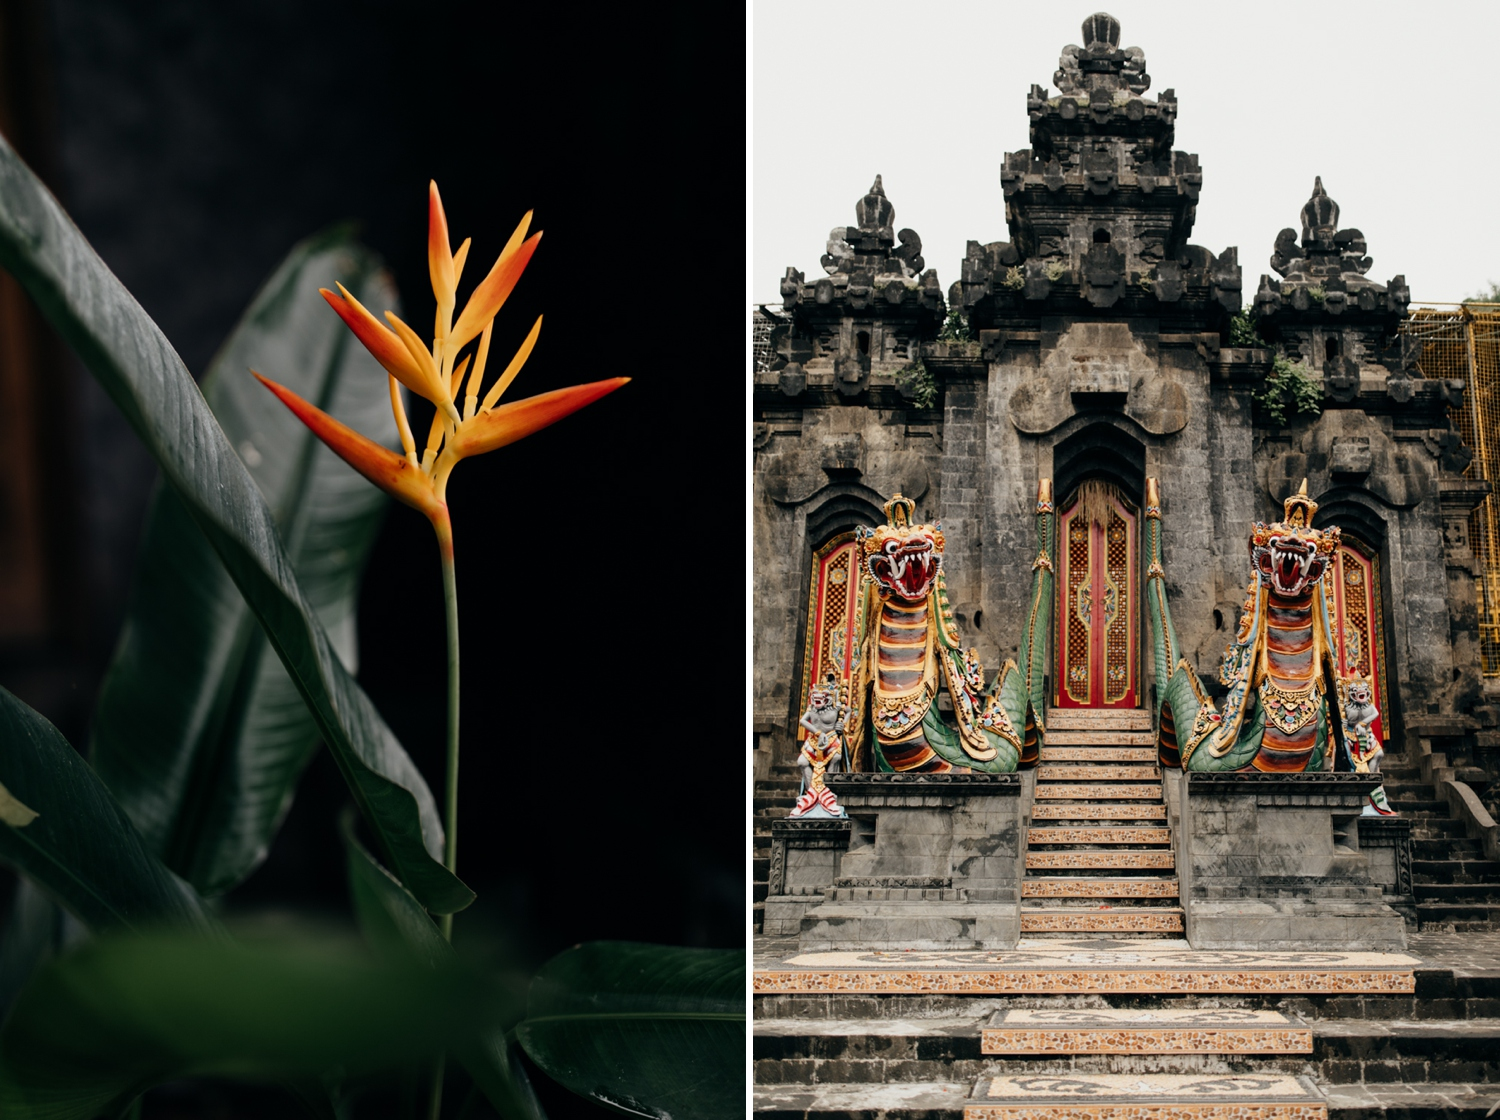 Temple and flower in Bali, Indonesia